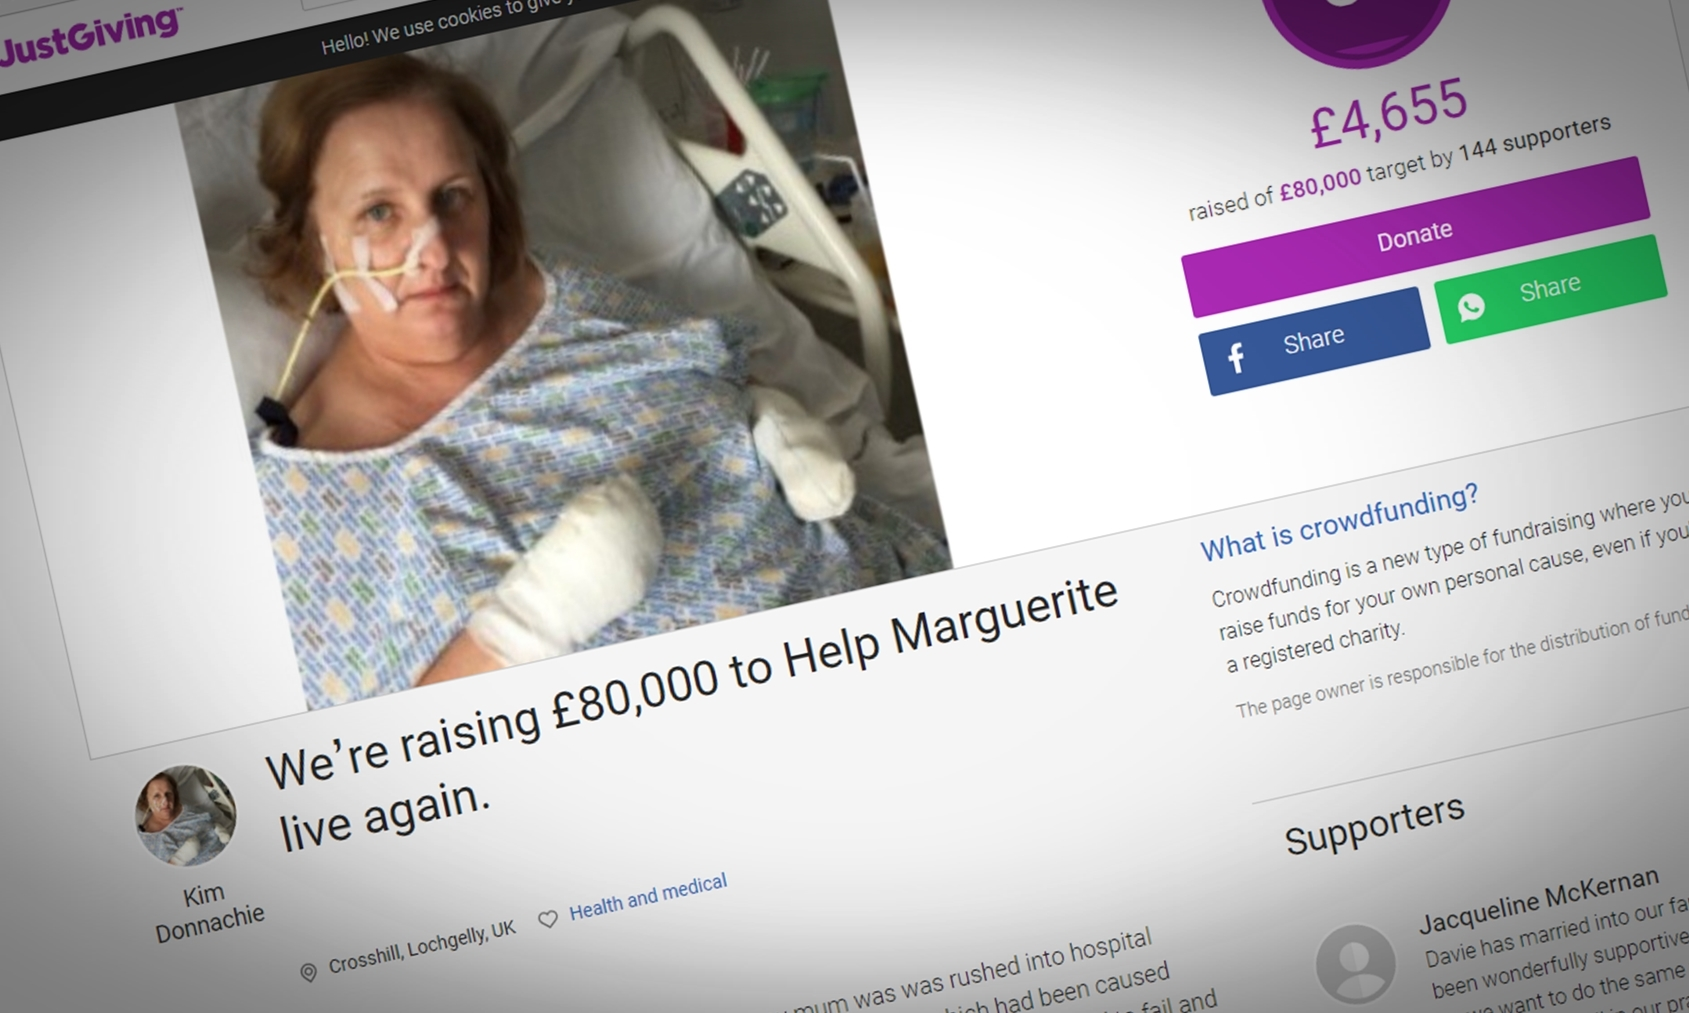 The family hope to raise £80,000 for Marguerite.